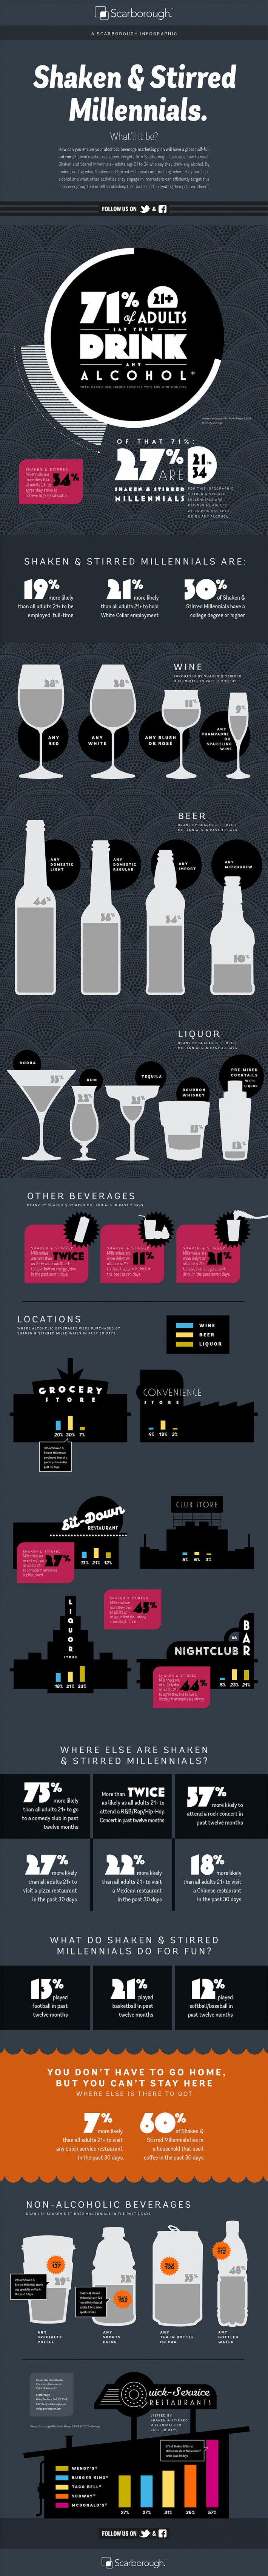 Scarborough Shaken & Stirred Millennials Infographic, designed by Three Steps Ahead